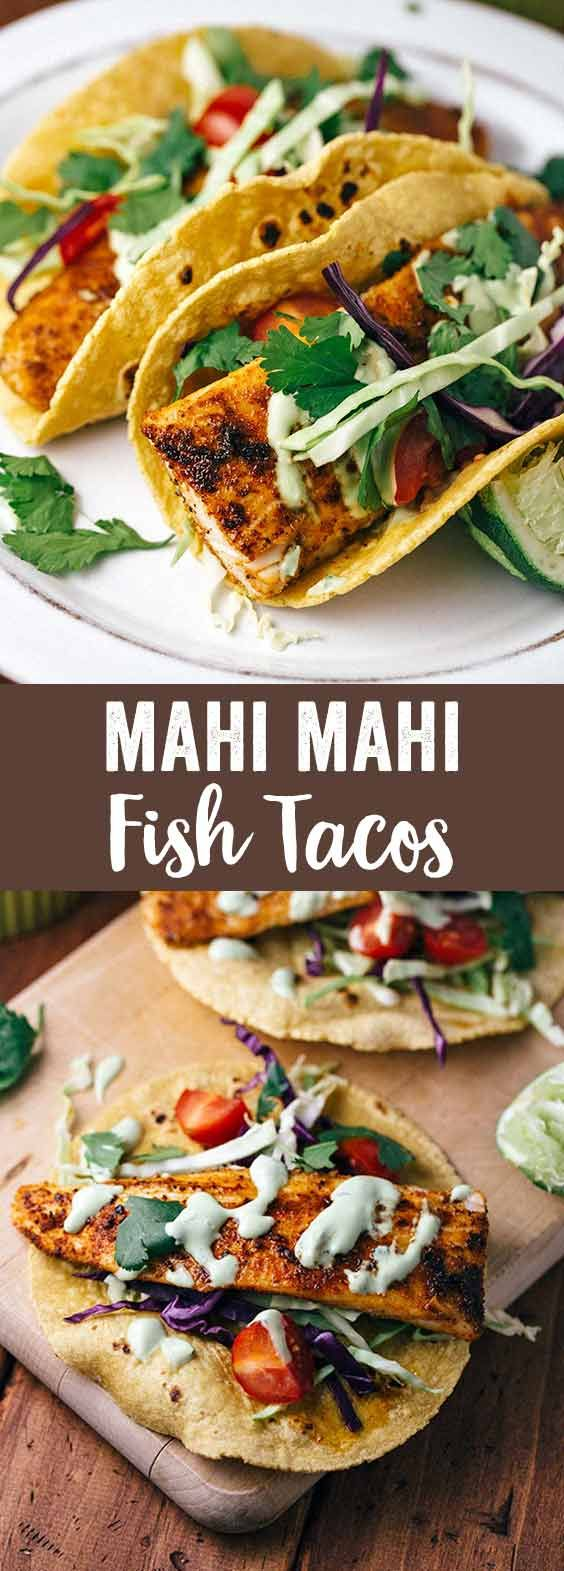 Blackened Mahi Mahi Fish Tacos with Avocado-Lime Sauce - A super simple and flavorful recipe that you won't need to head to Mexico to enjoy! via @foodiegavin